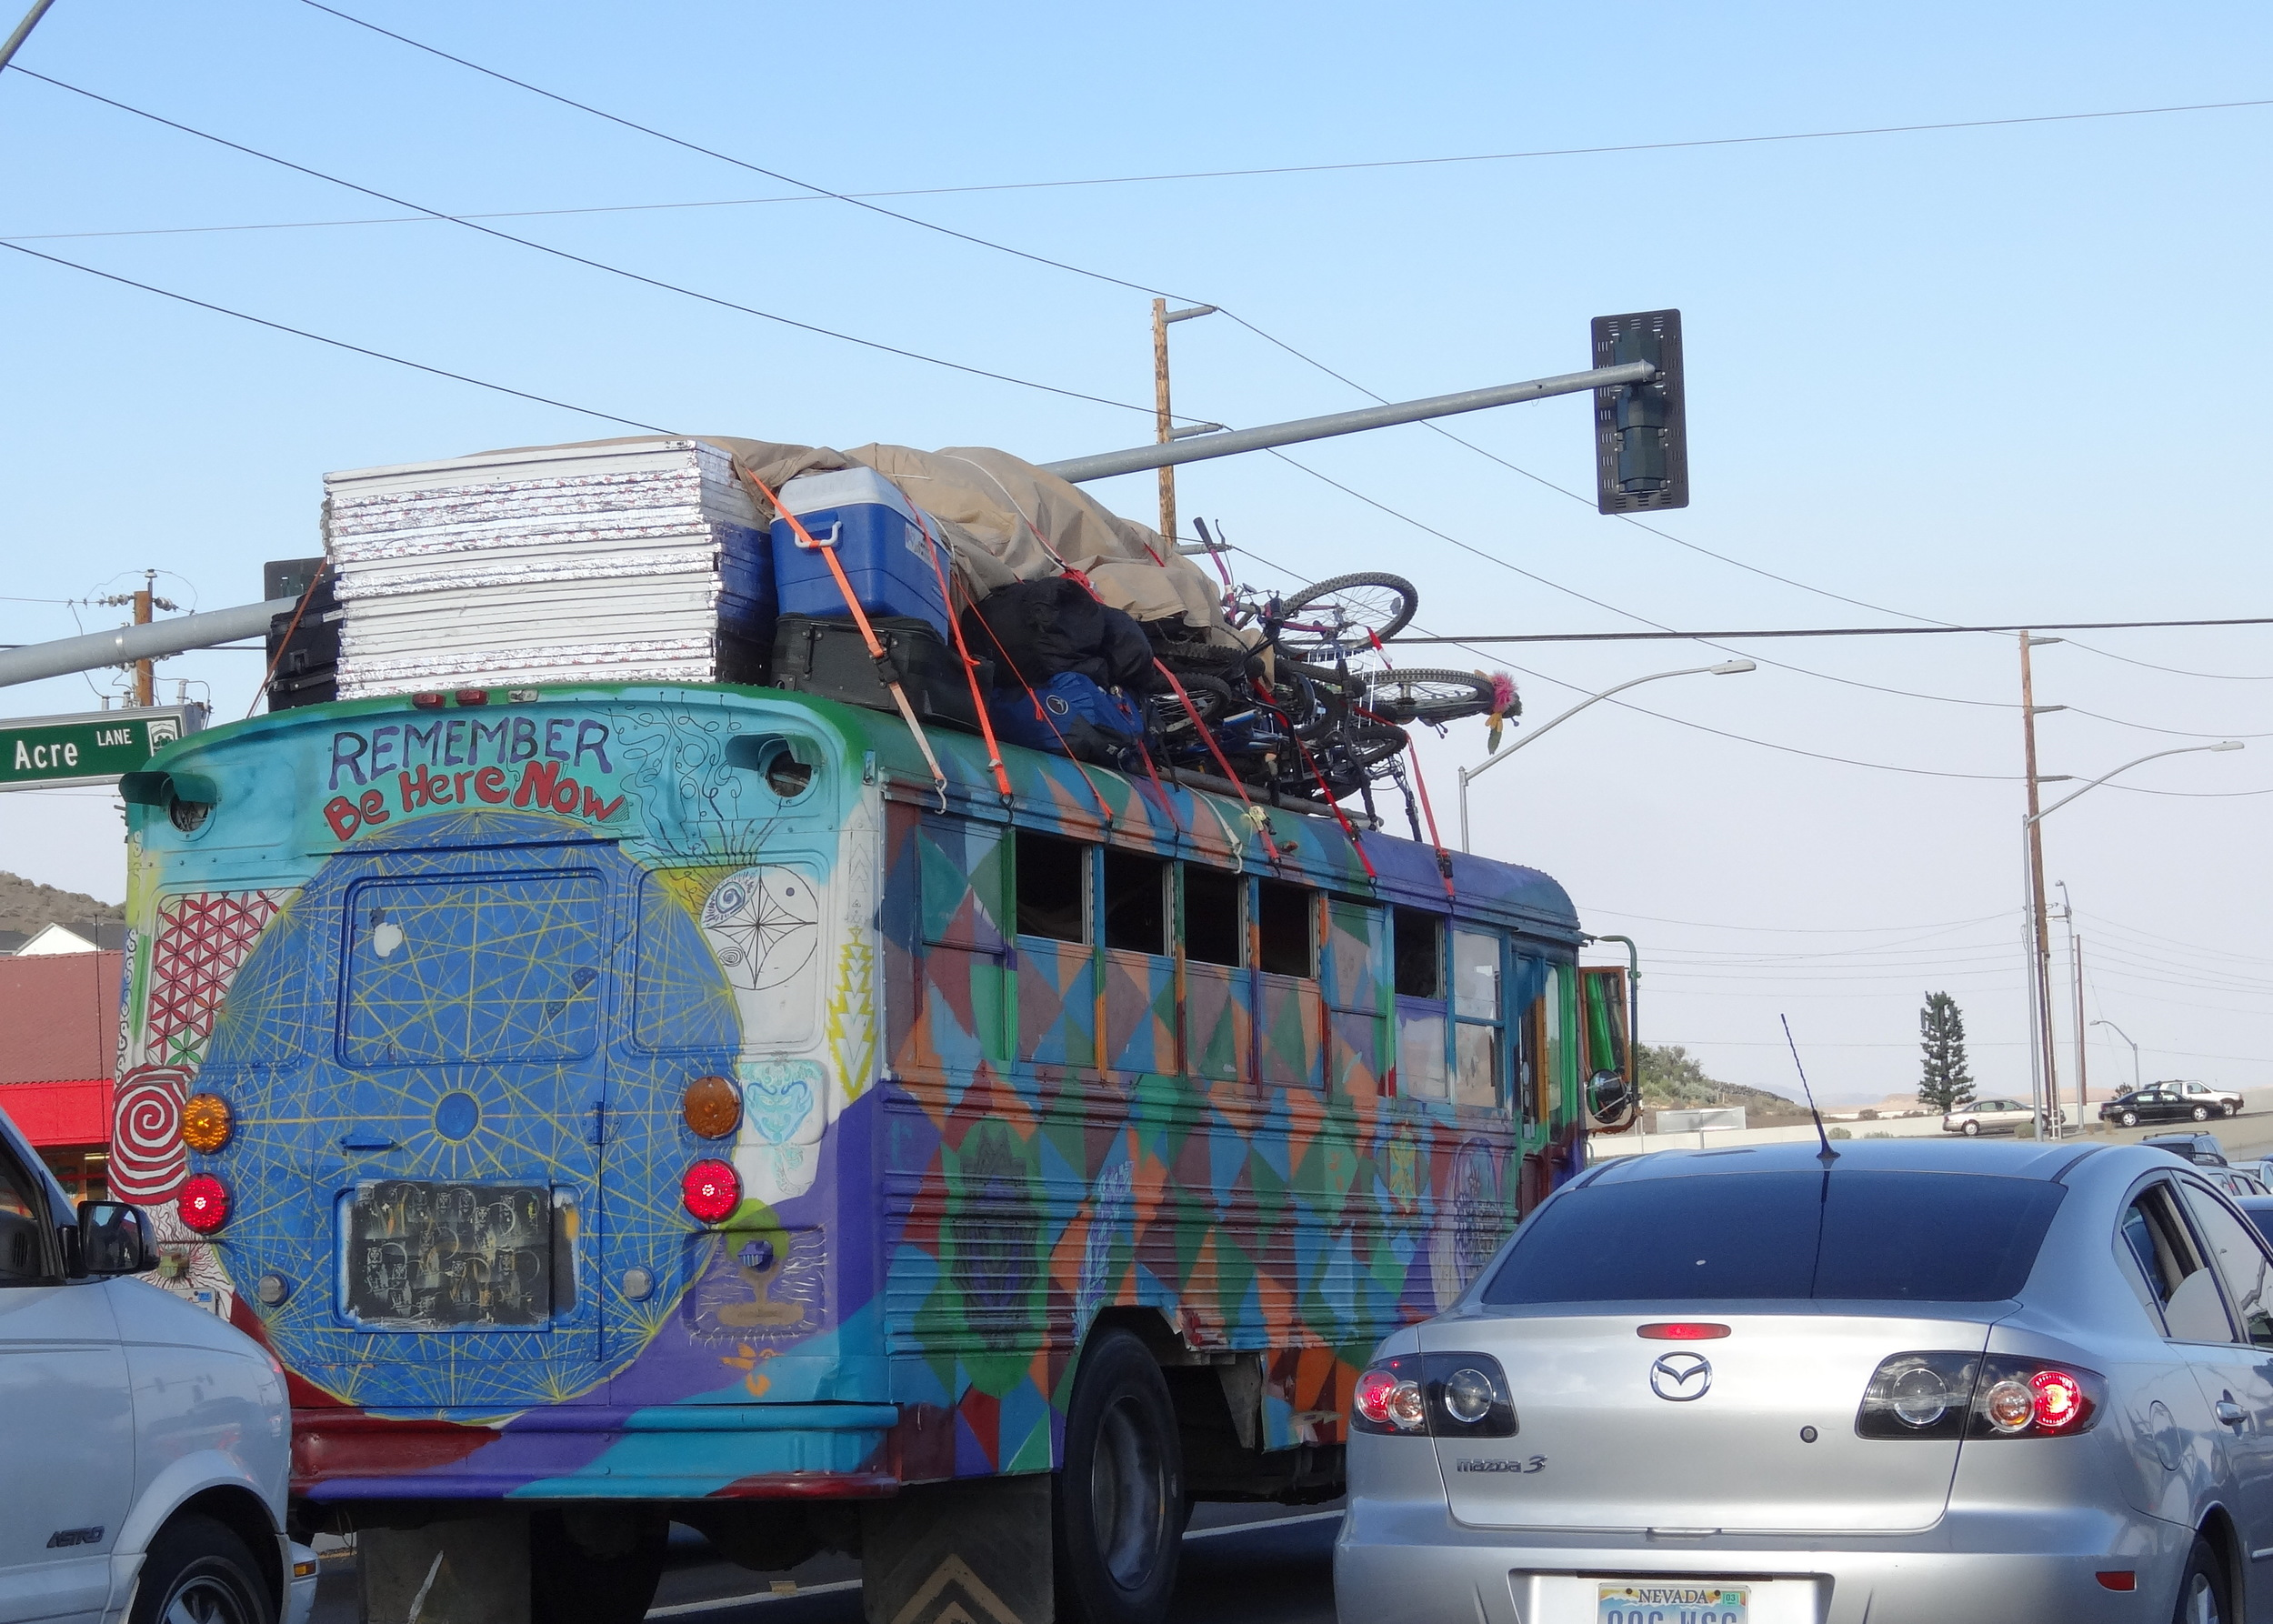 One of the more-festive vehicles en-route to Burning Man in the days leading up to the event.